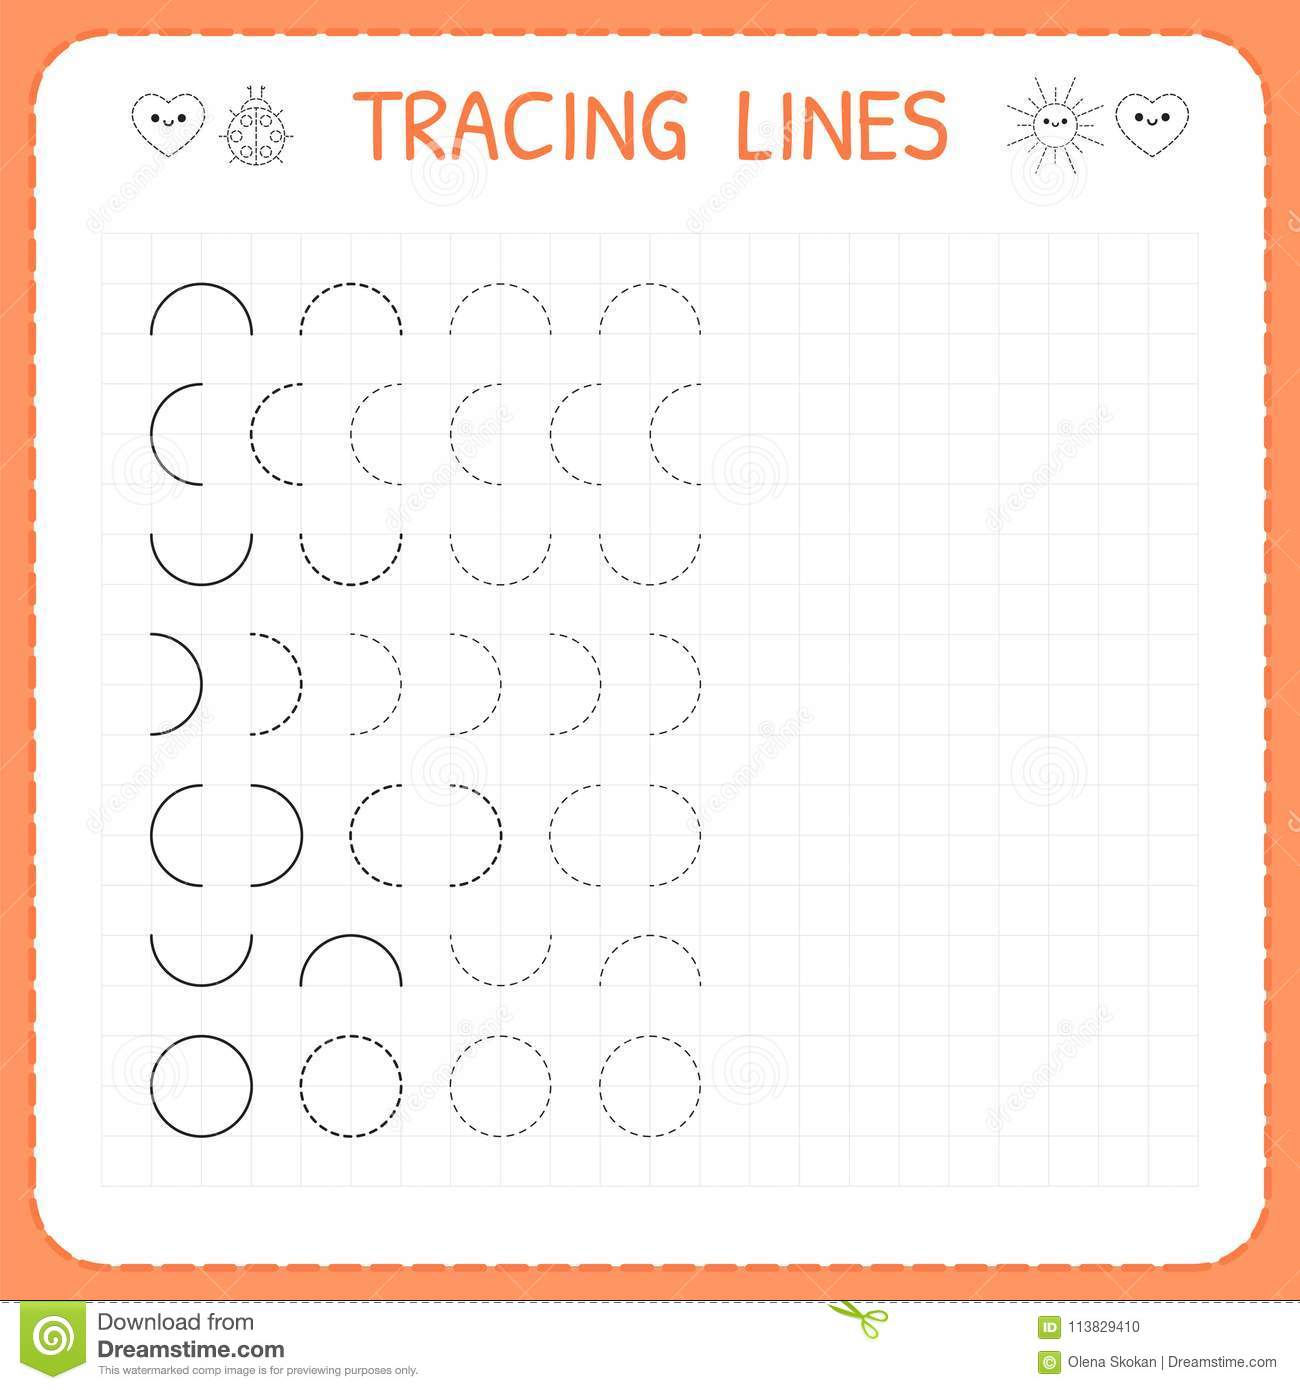 Tracing Line Font Download